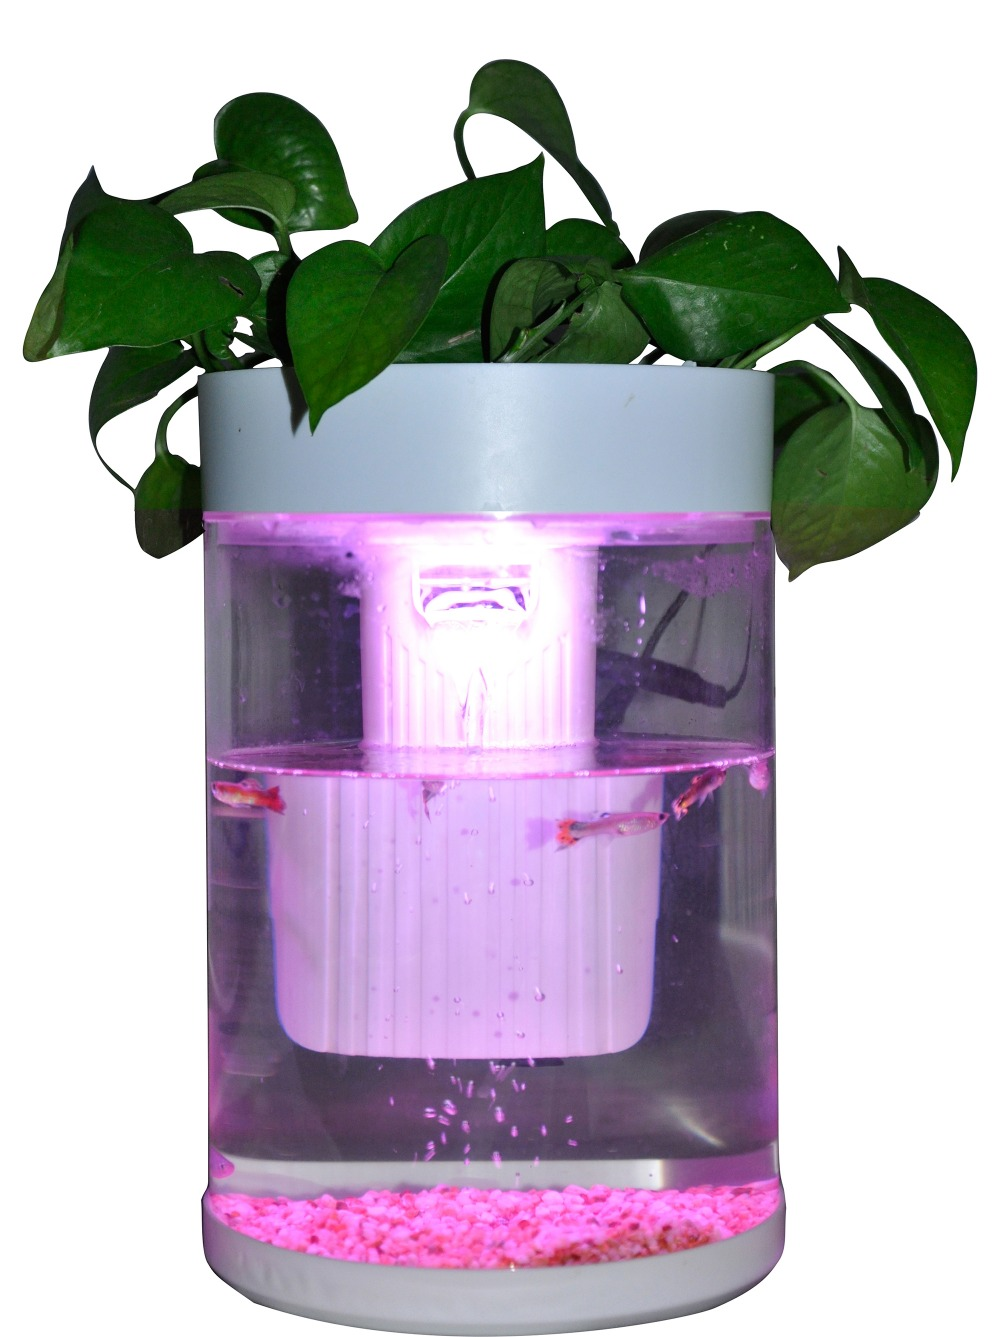 With Plant green Plants Mini office table aquarium